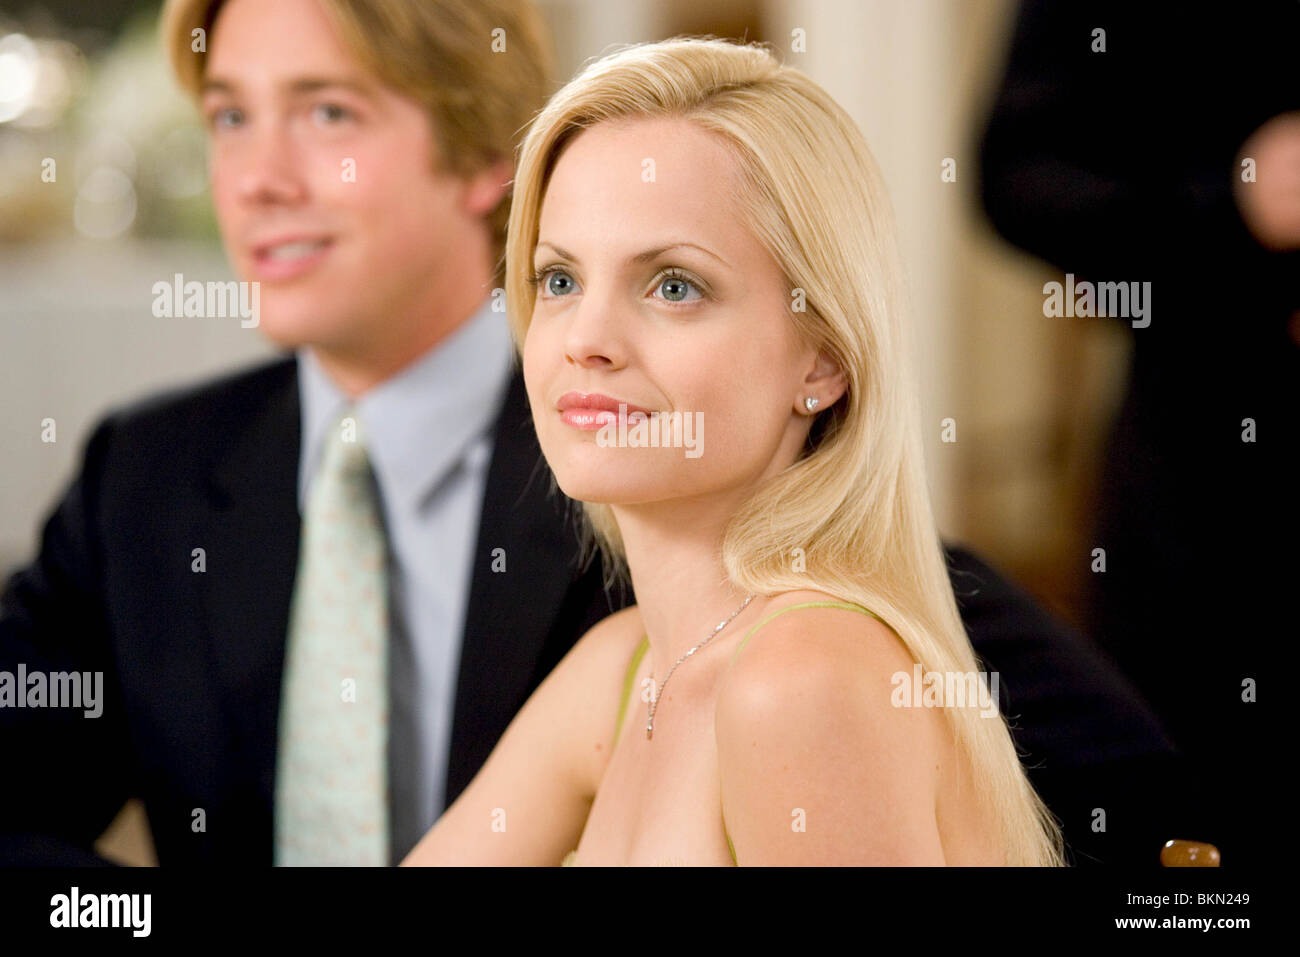 RUMOR HAS IT (2005) MENA SUVARI RUMH 001-22 - Stock Image